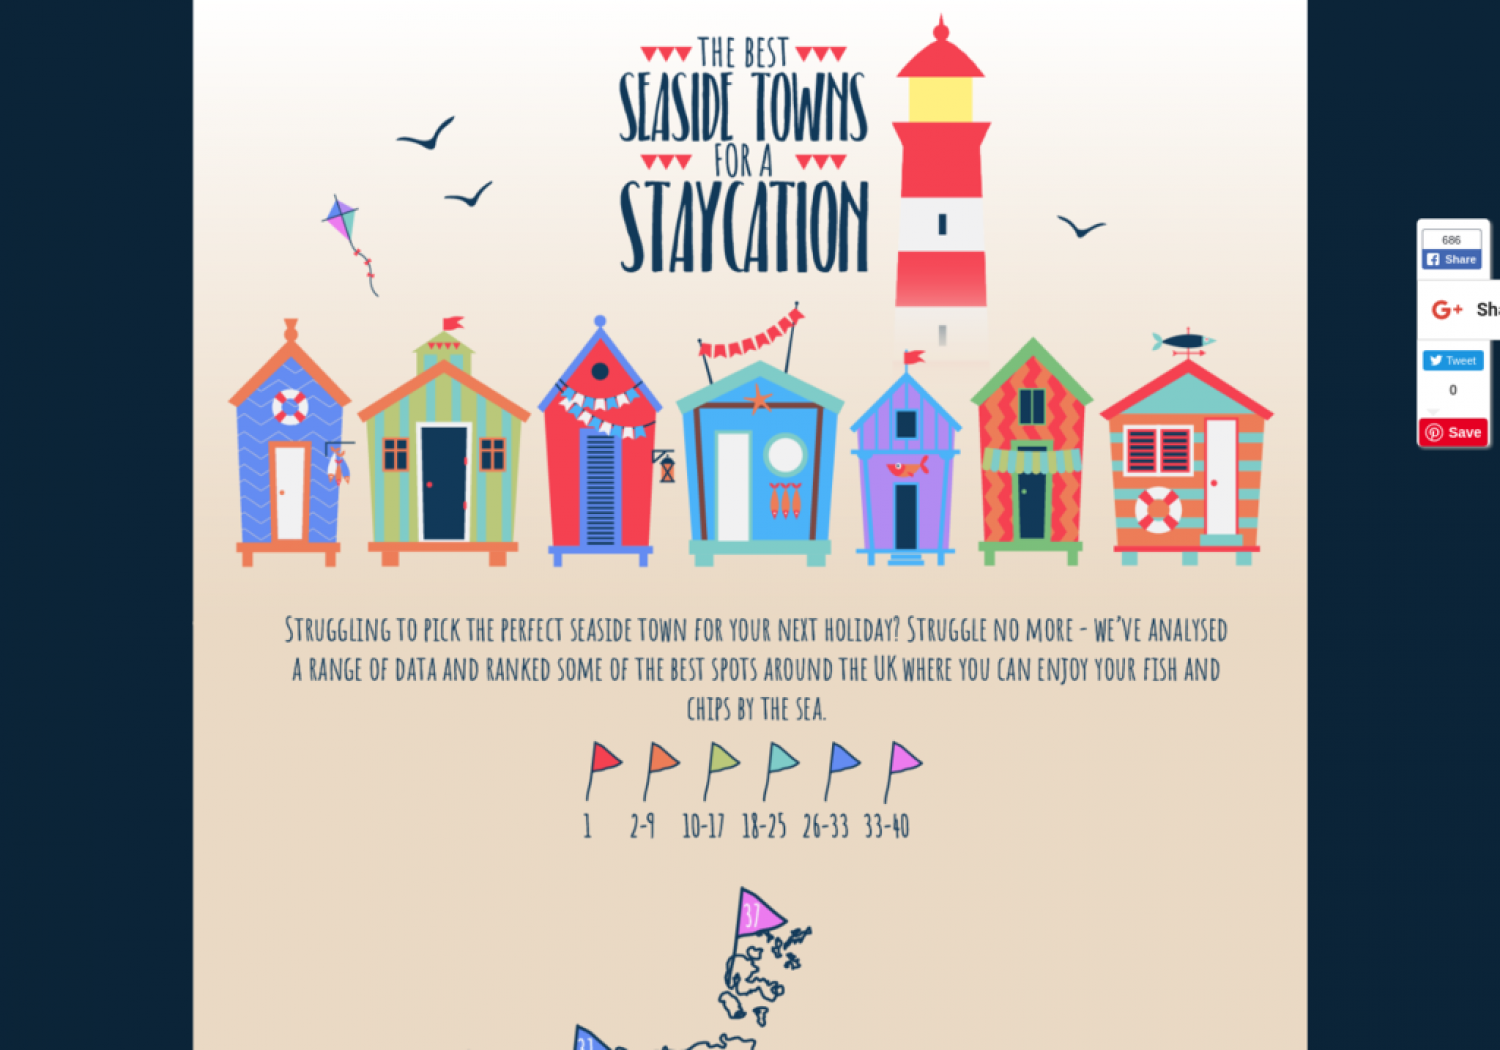 The Best Seaside Towns for a Staycation Infographic